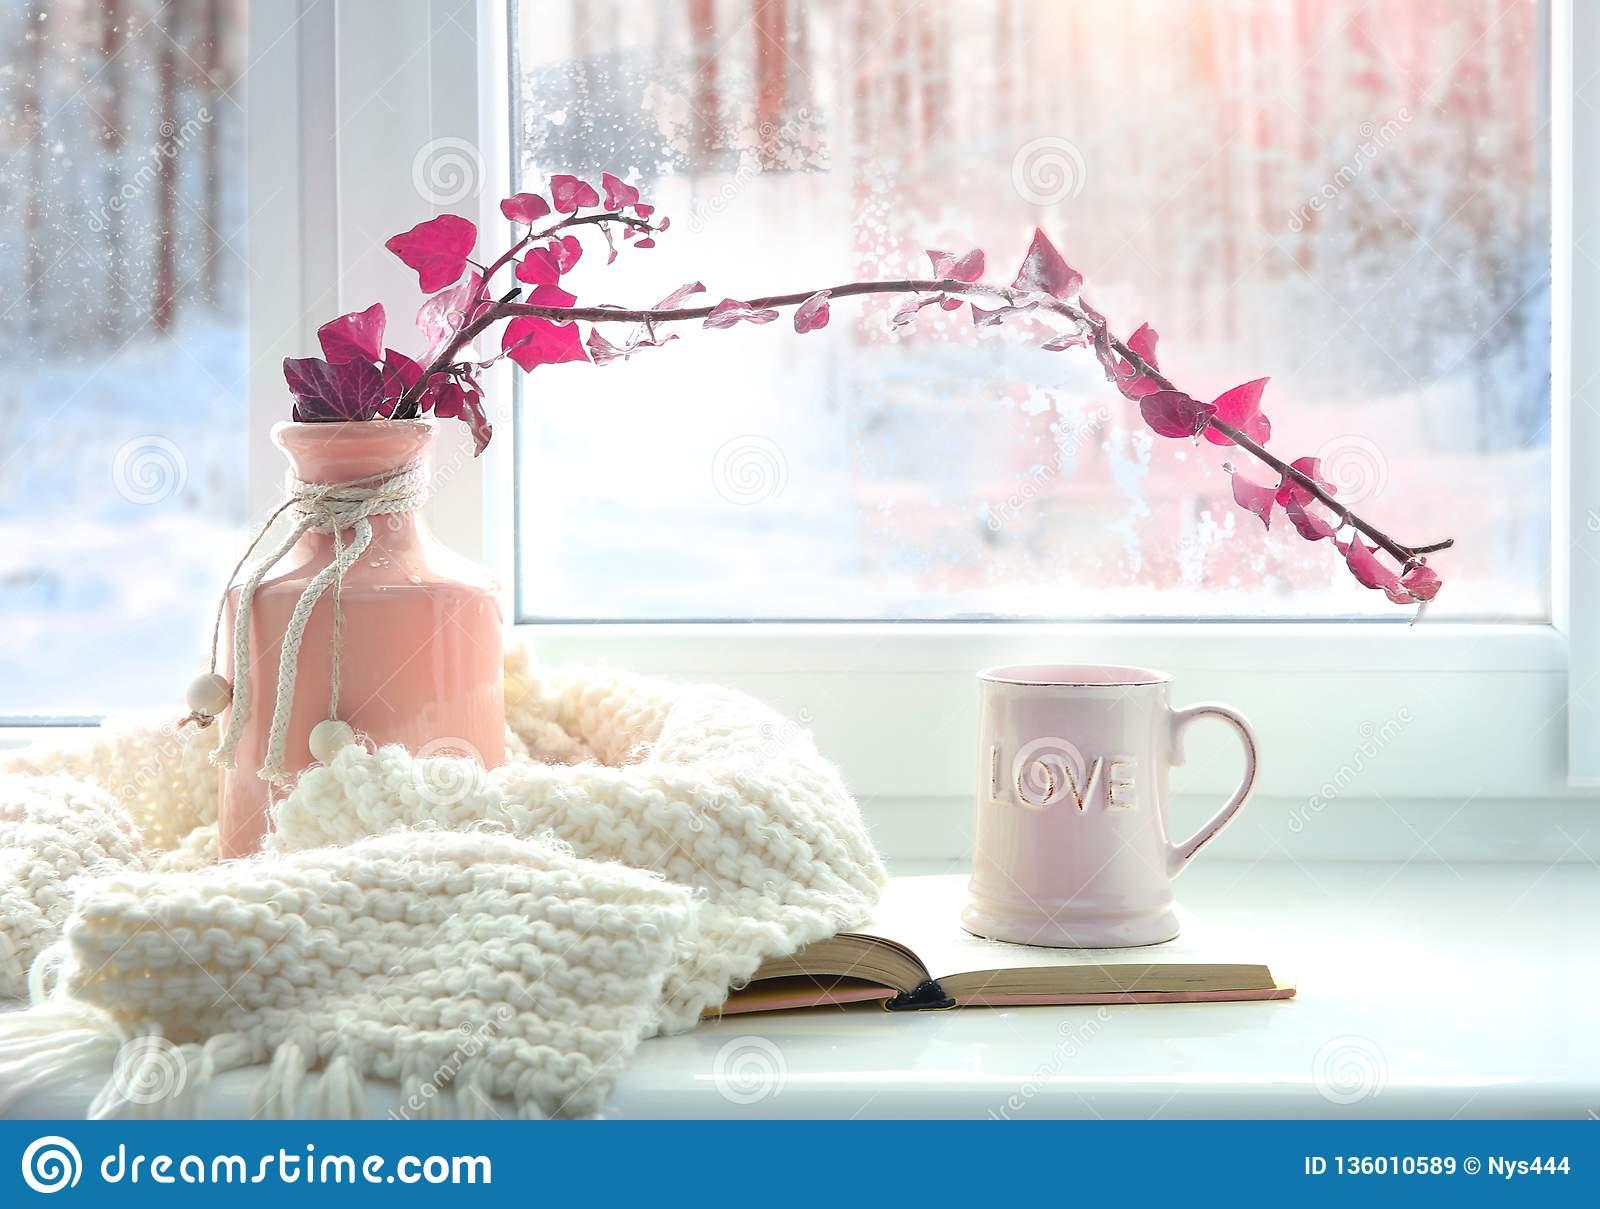 Winter home romantic icon.Valentine card.Mug with knits and book on window sill